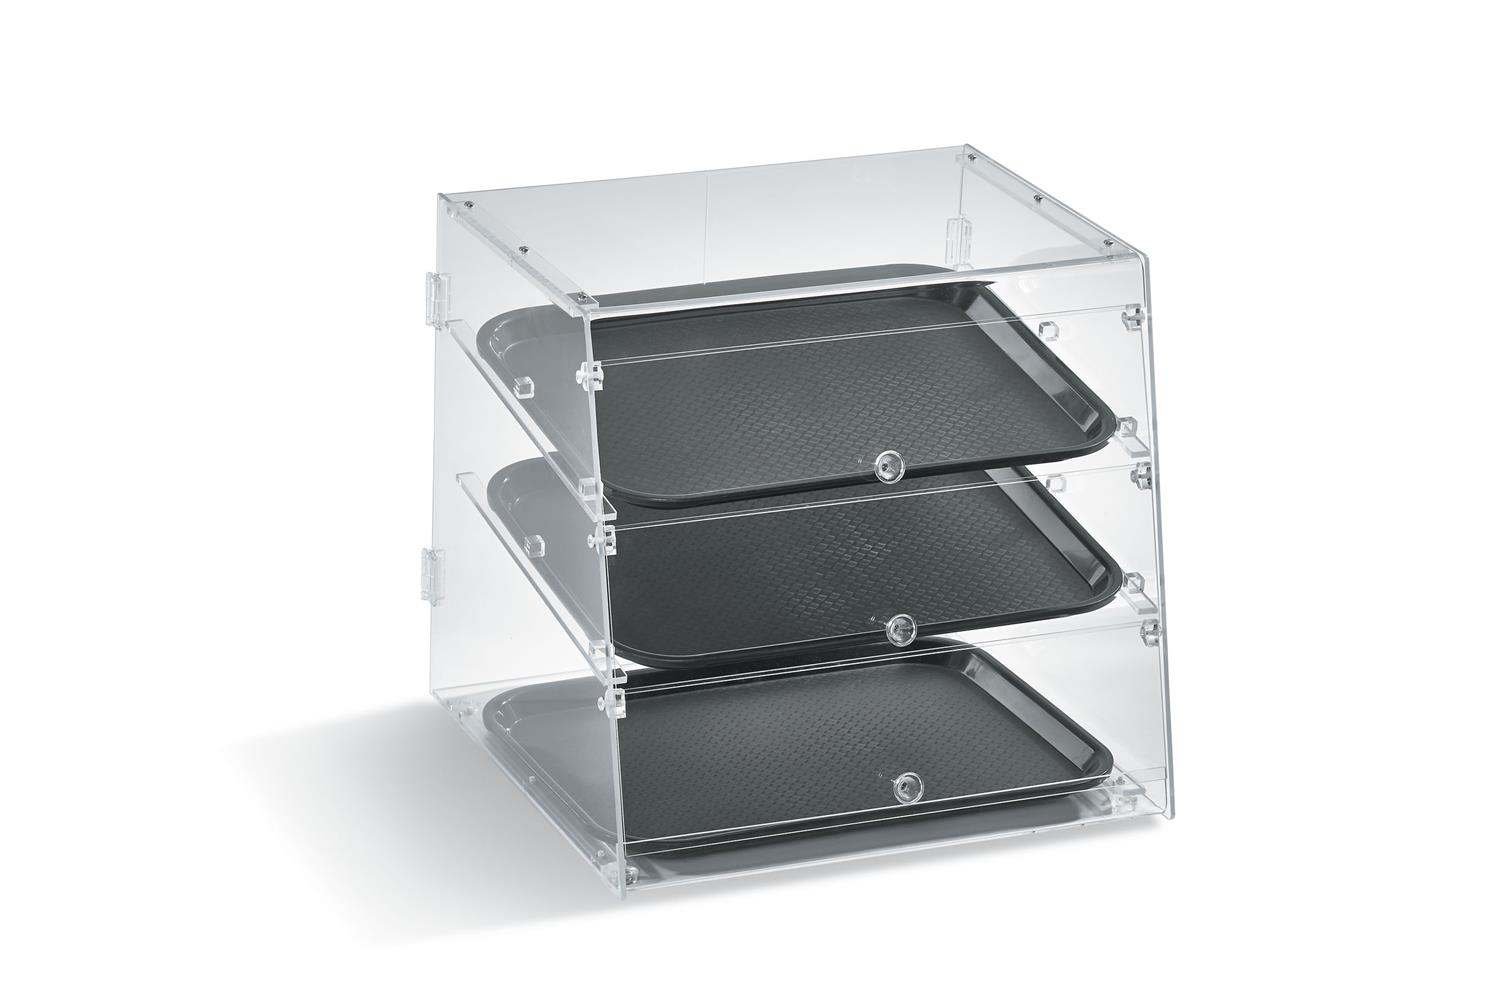 Vollrath KDC1418-3-06 Knock down bakery case 3 tray